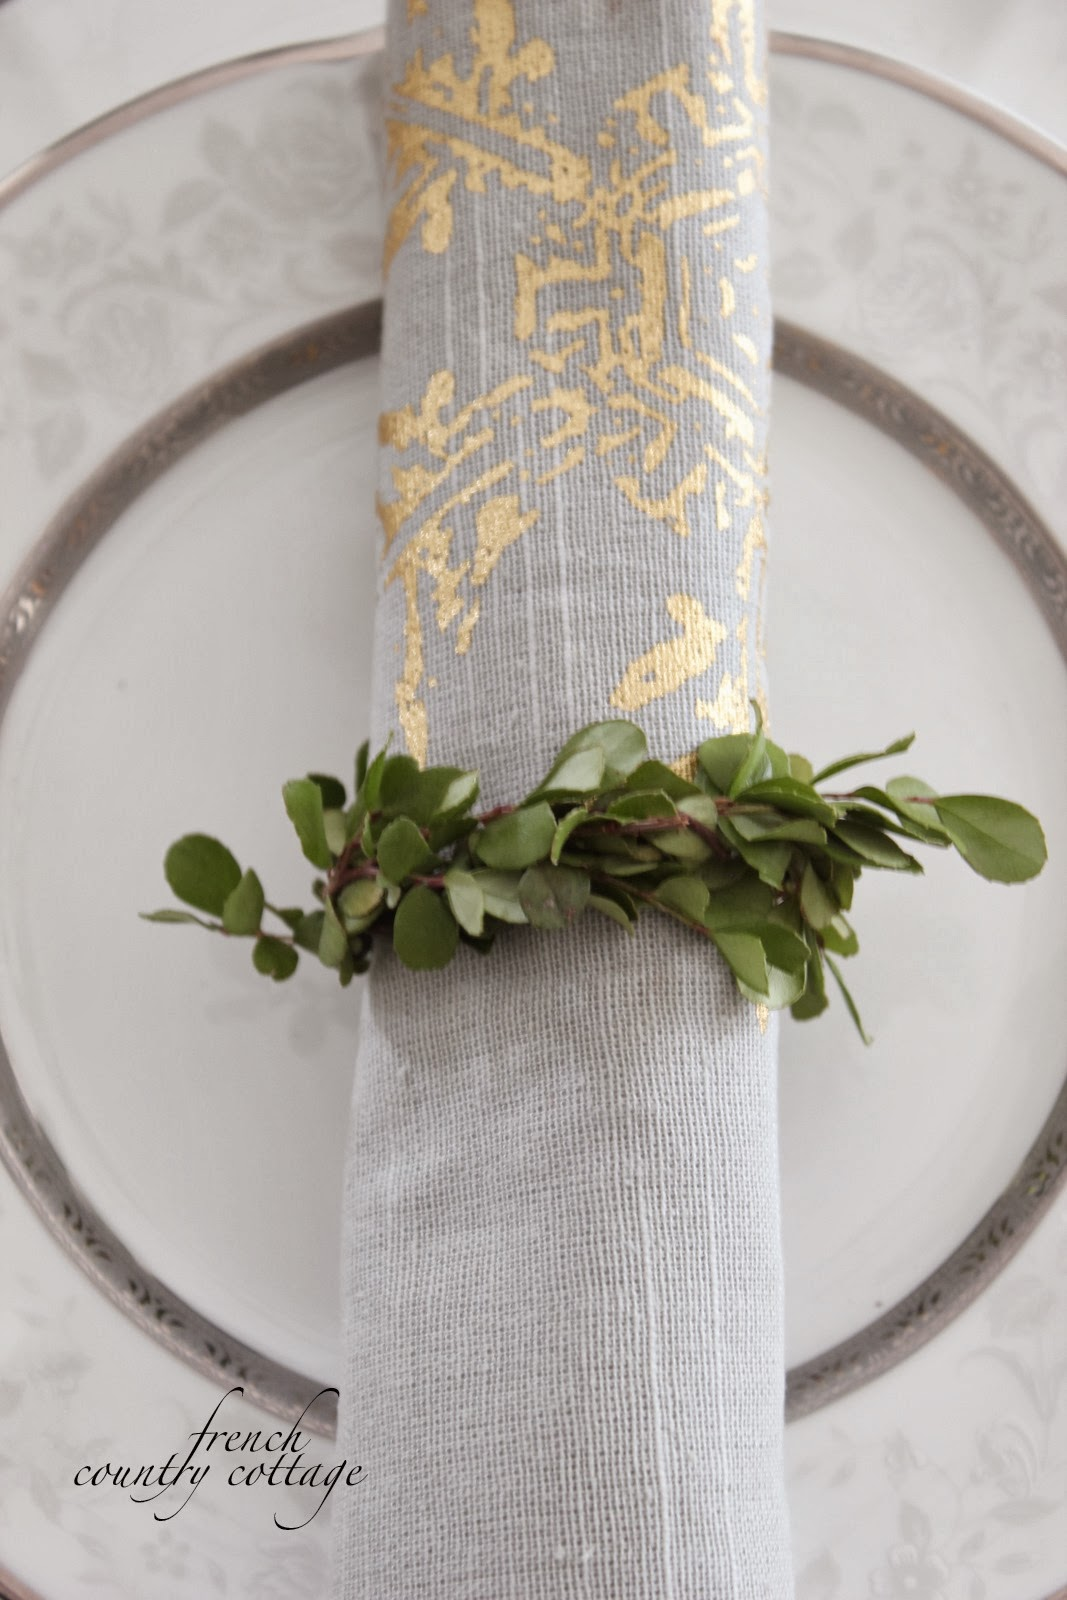 Love the imprint idea. I've seen the napkin rings in antique stores, but could never figure out how to bend them. Of course you had the solution.